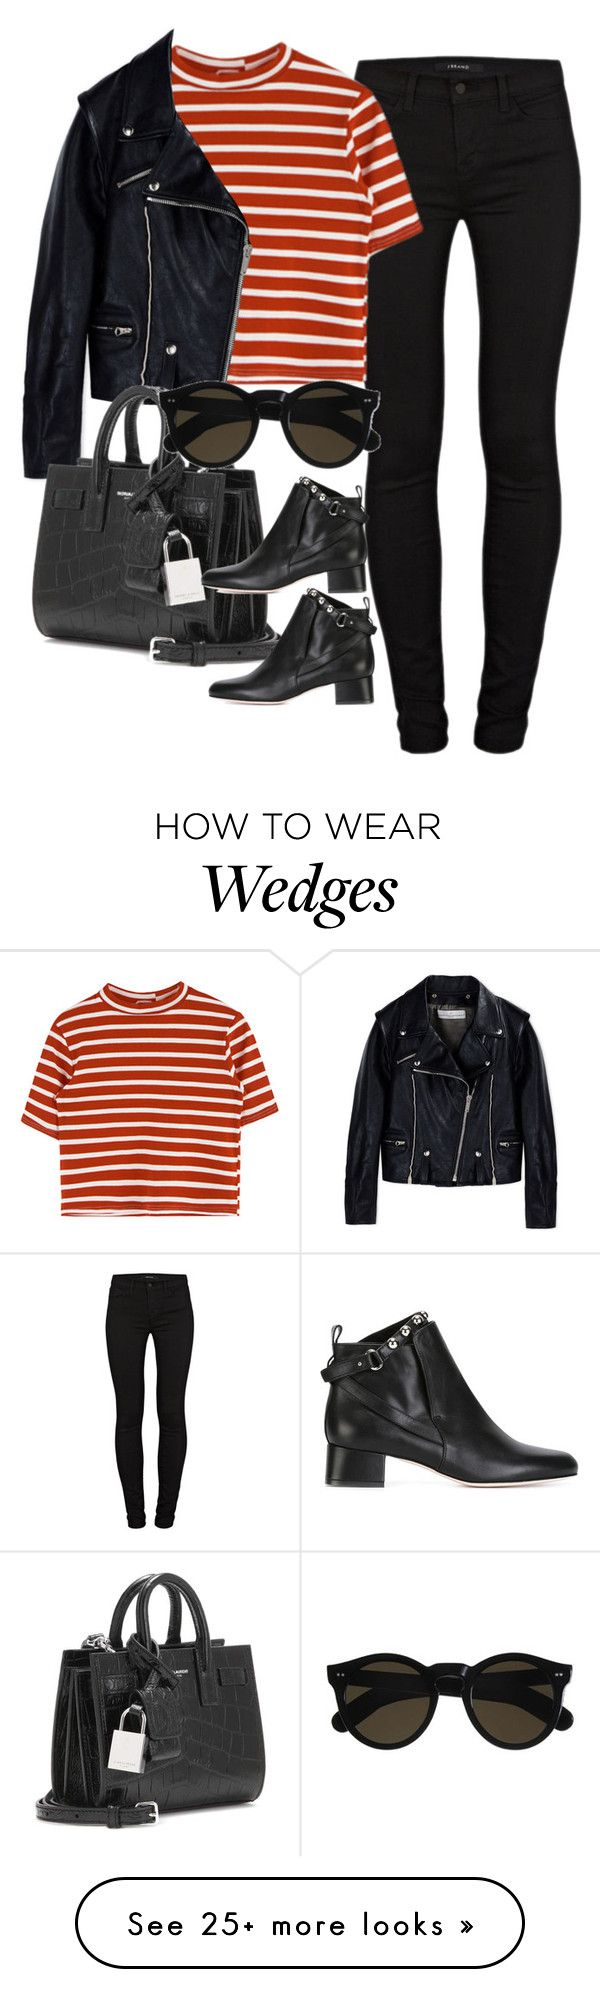 """Untitled #3265"" by glitter-the-world on Polyvore featuring J Brand, Golden Goose, Yves Saint Laurent, Beau Coops and RED Valentino"